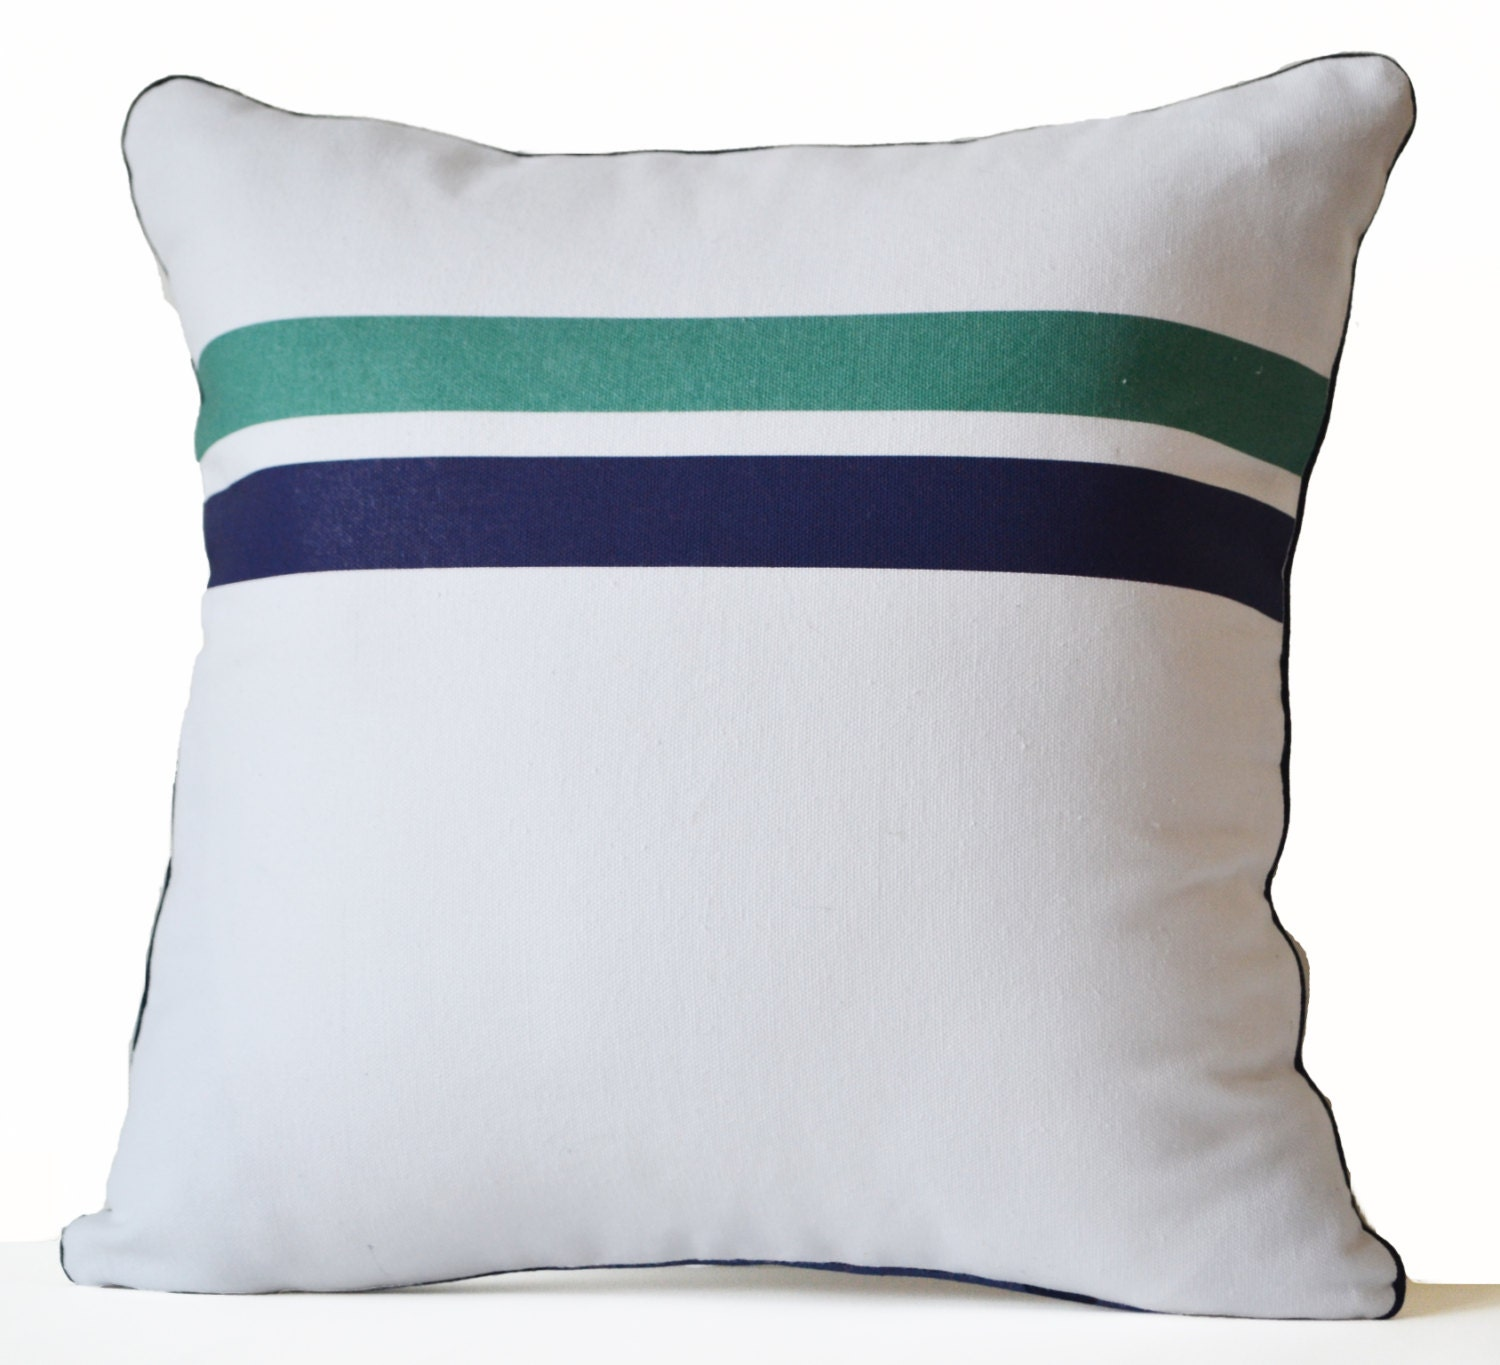 Throw Pillow Covers White : Decorative Pillow Cover White Cotton Pillow Geometric